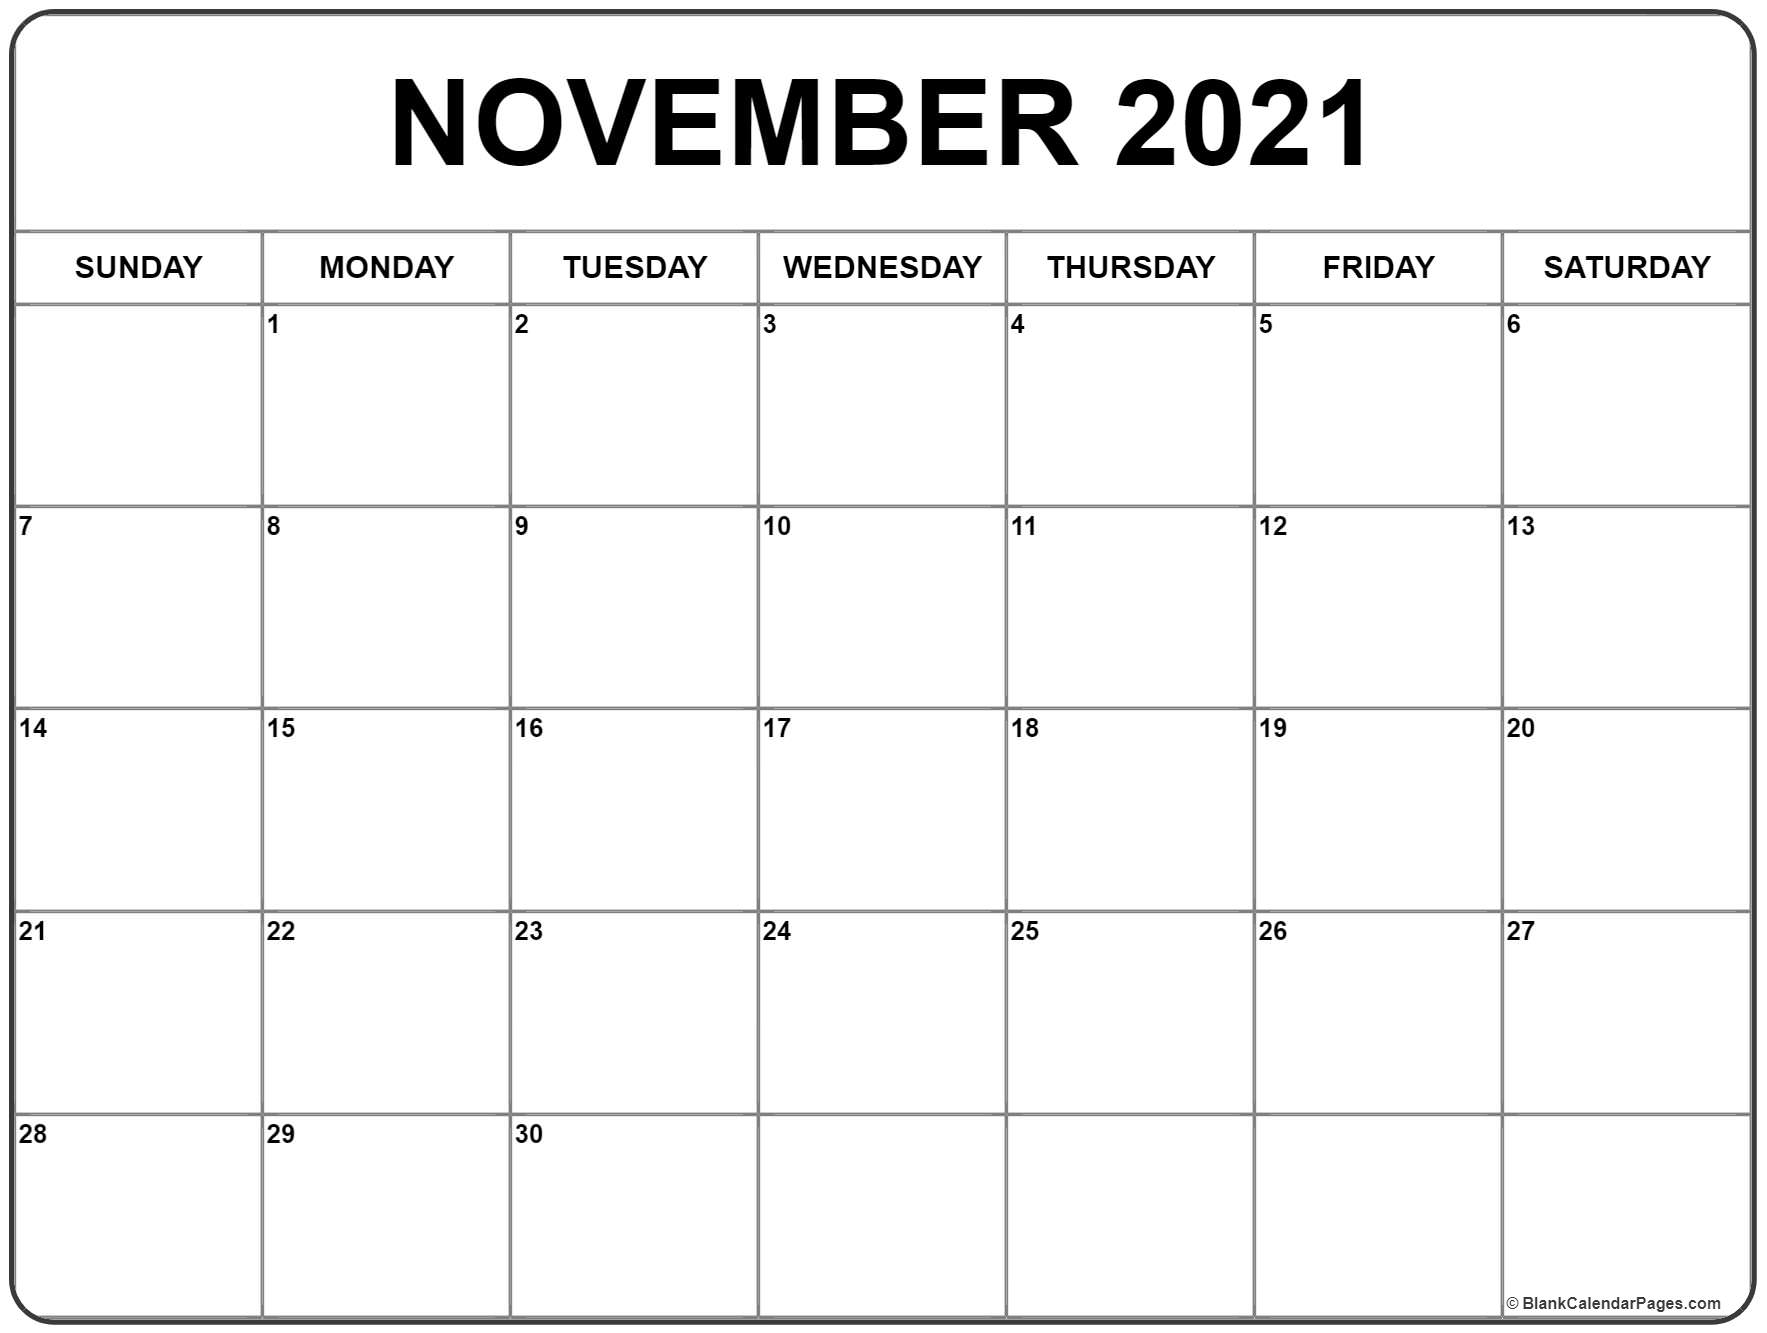 November 2020 Calendar Printable Free November 2020 calendar | free printable monthly calendars